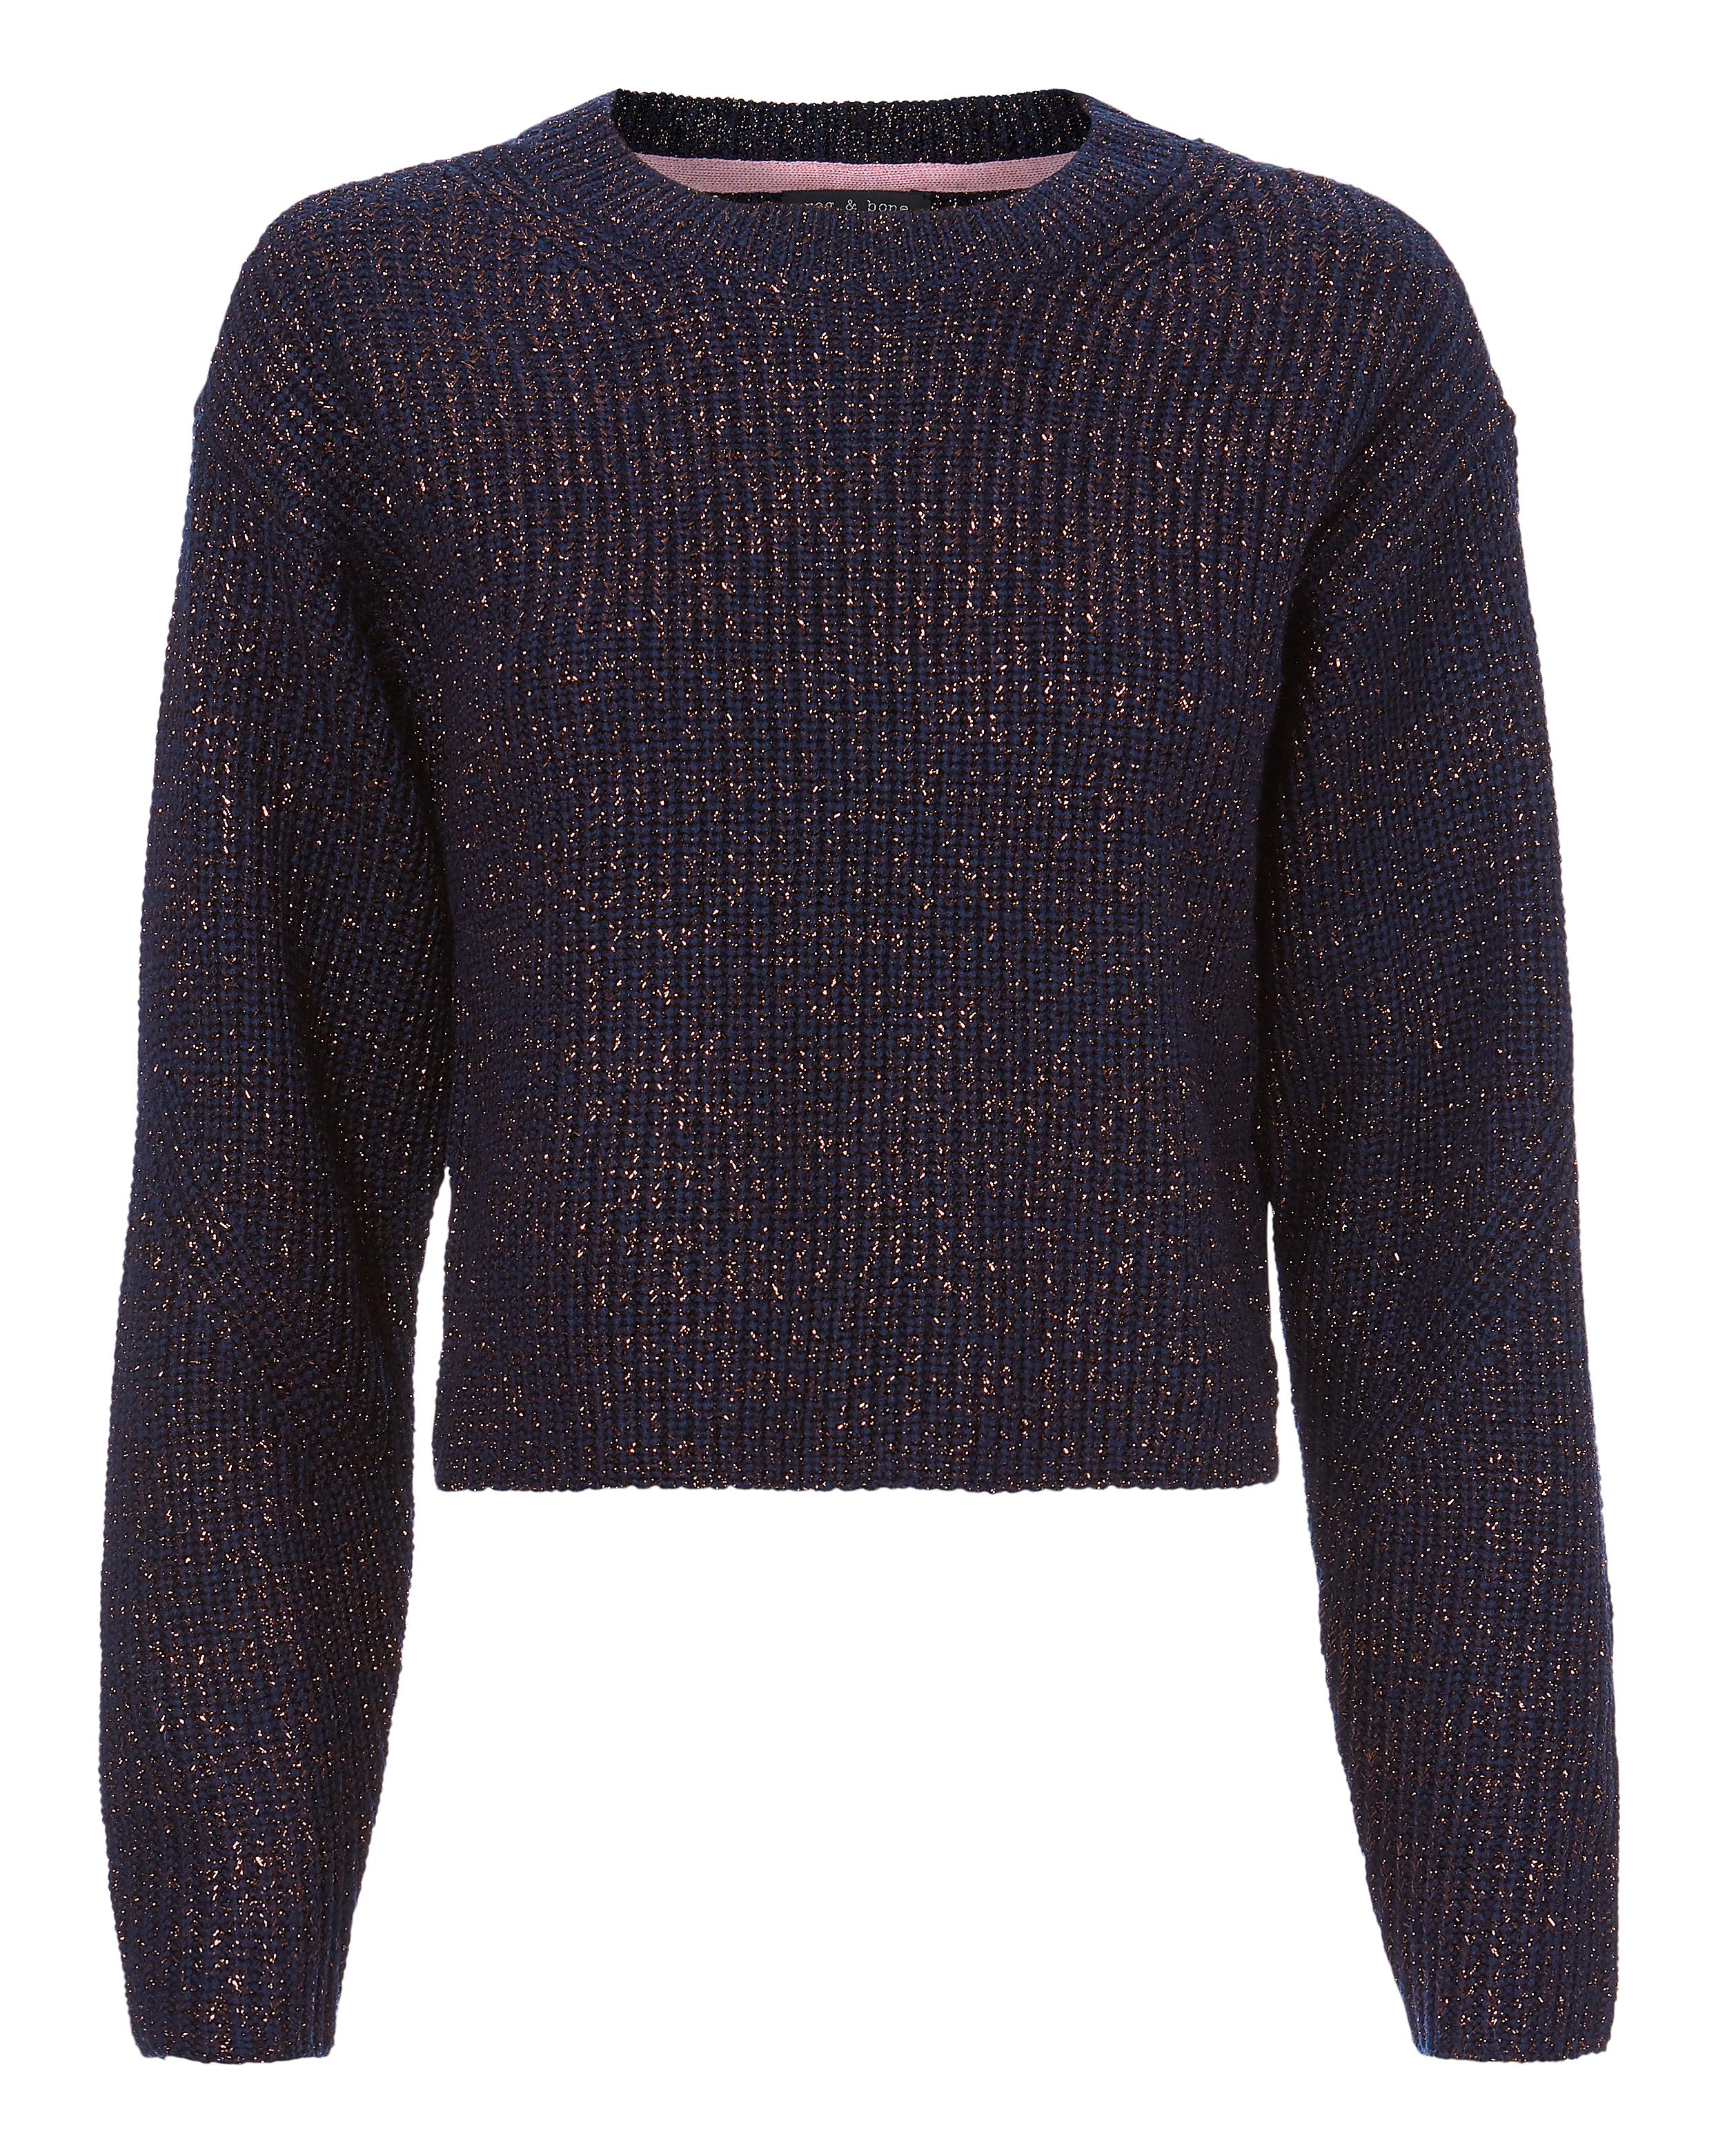 Rag & bone Jubilee Lurex Navy Cropped Sweater in Blue | Lyst